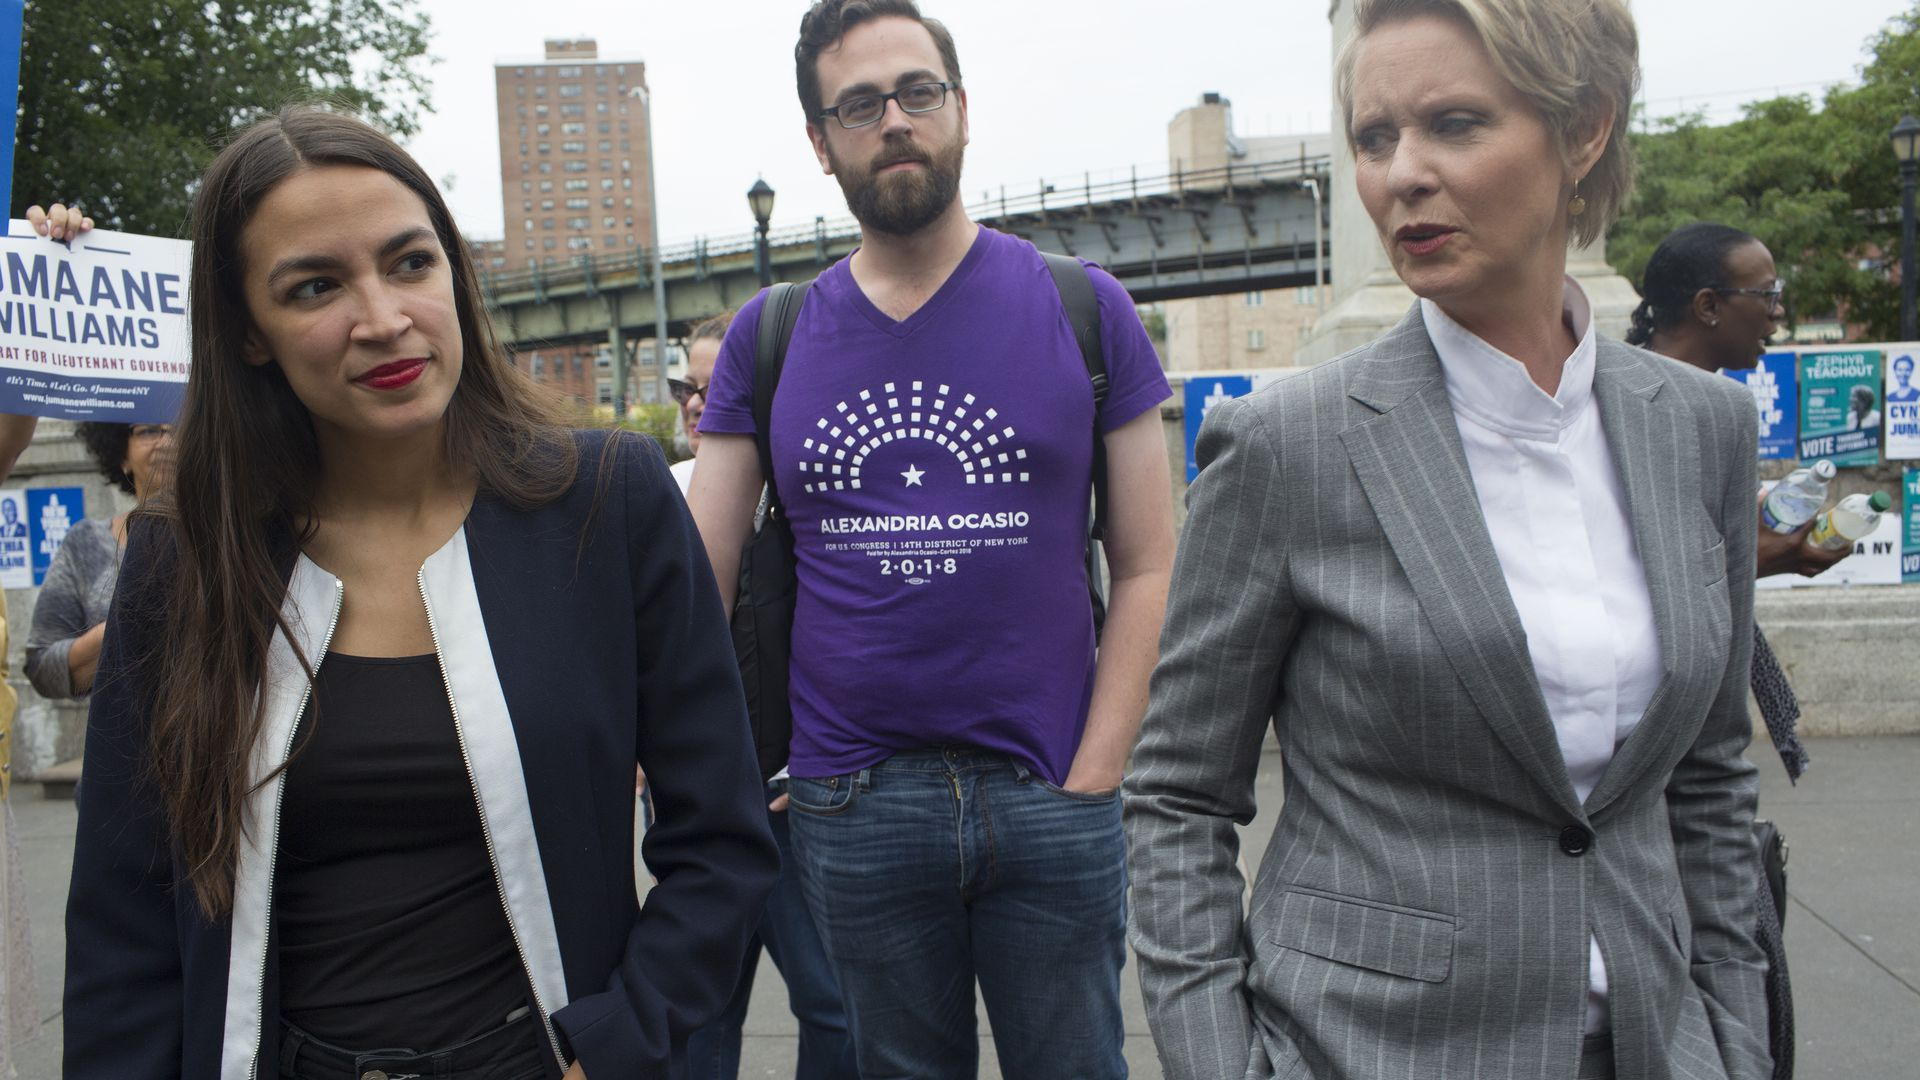 Cynthia Nixon on the campaign trail with Alexandria Ocasio-Cortez